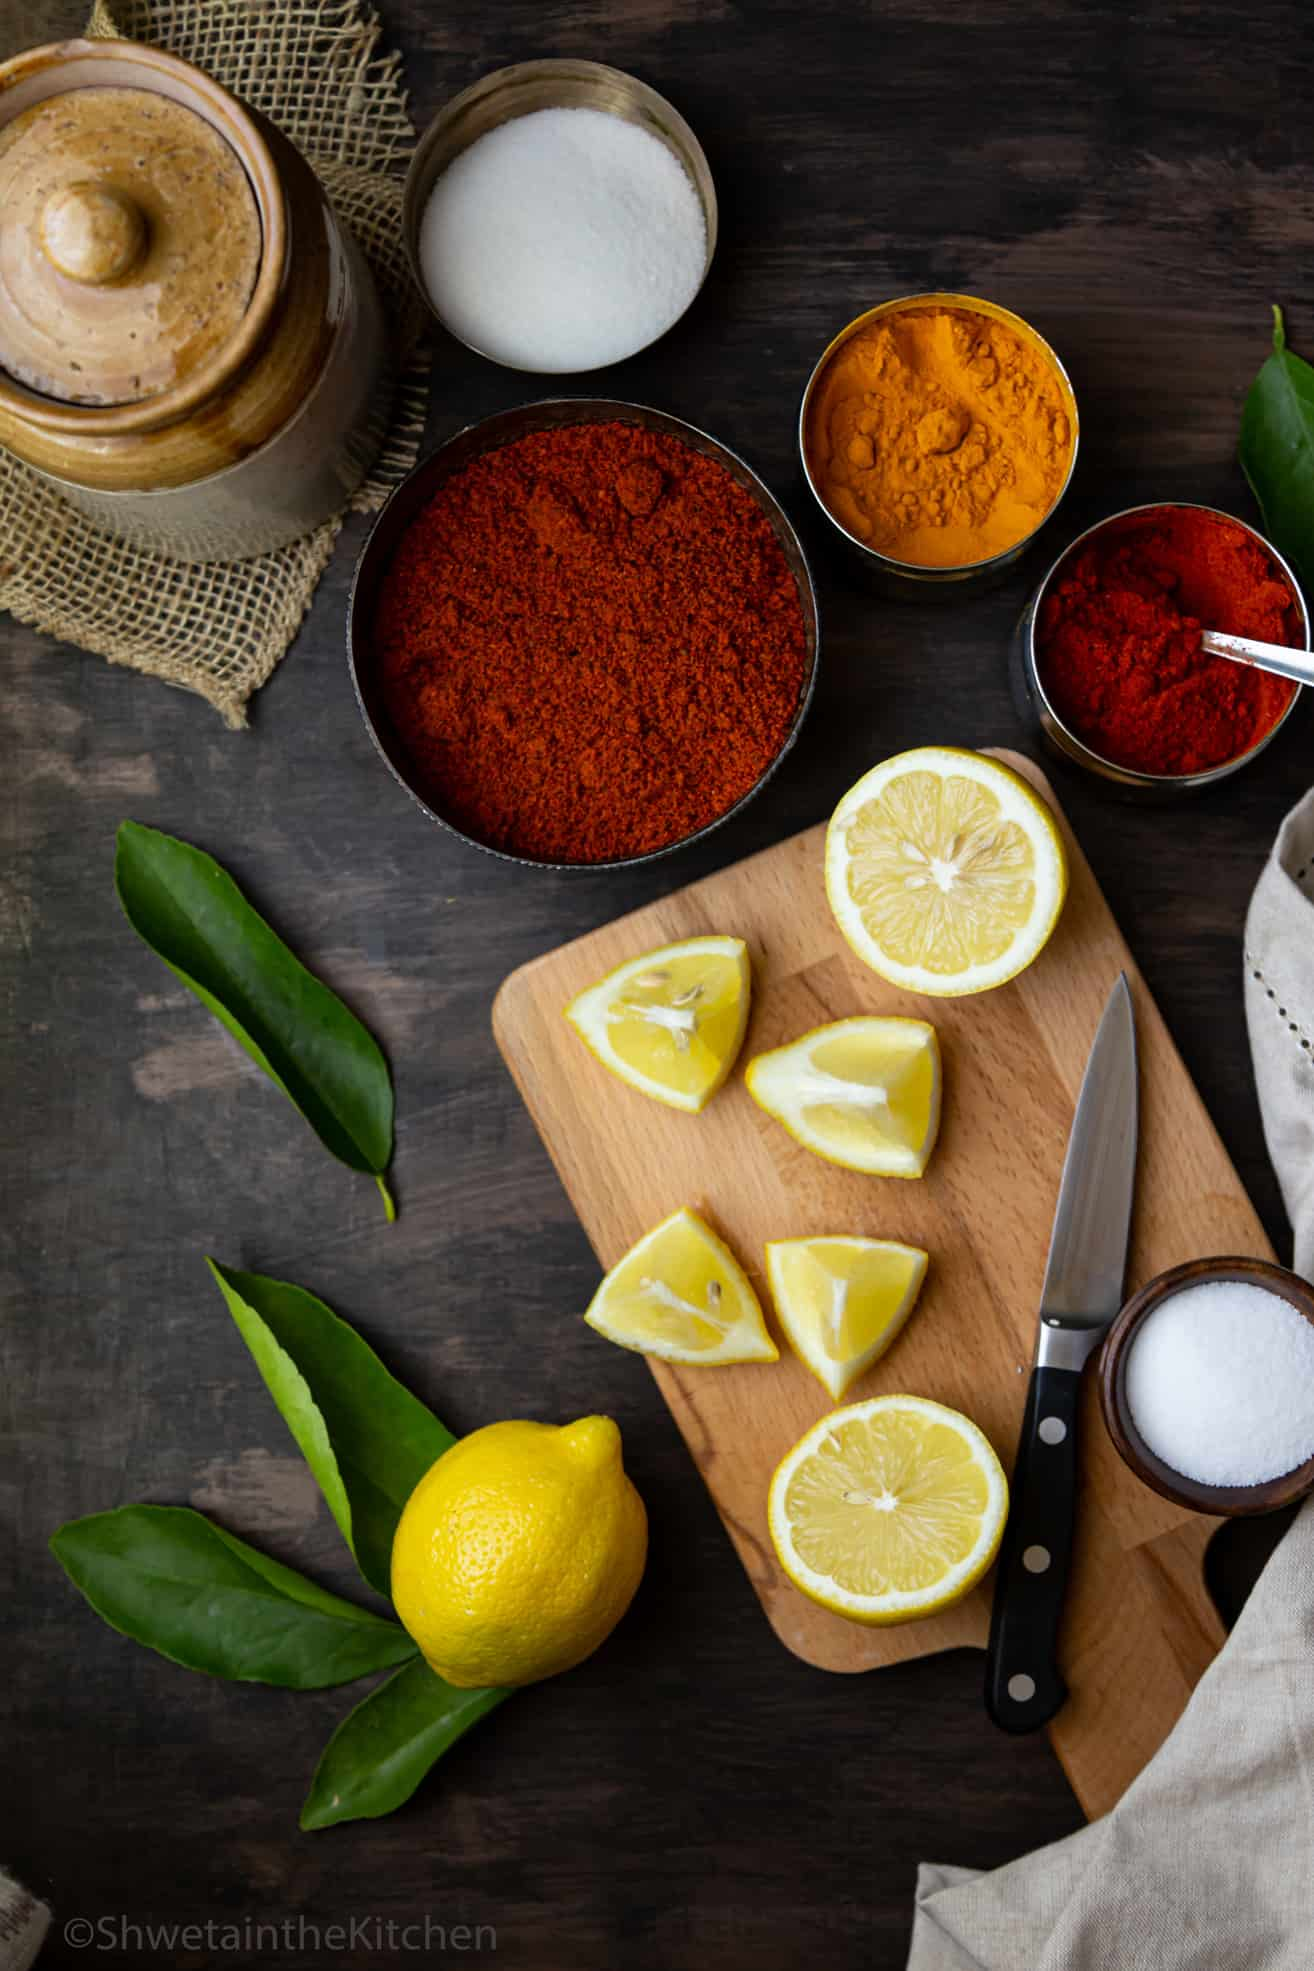 All the ingredients laid out for making Lemon Pickle